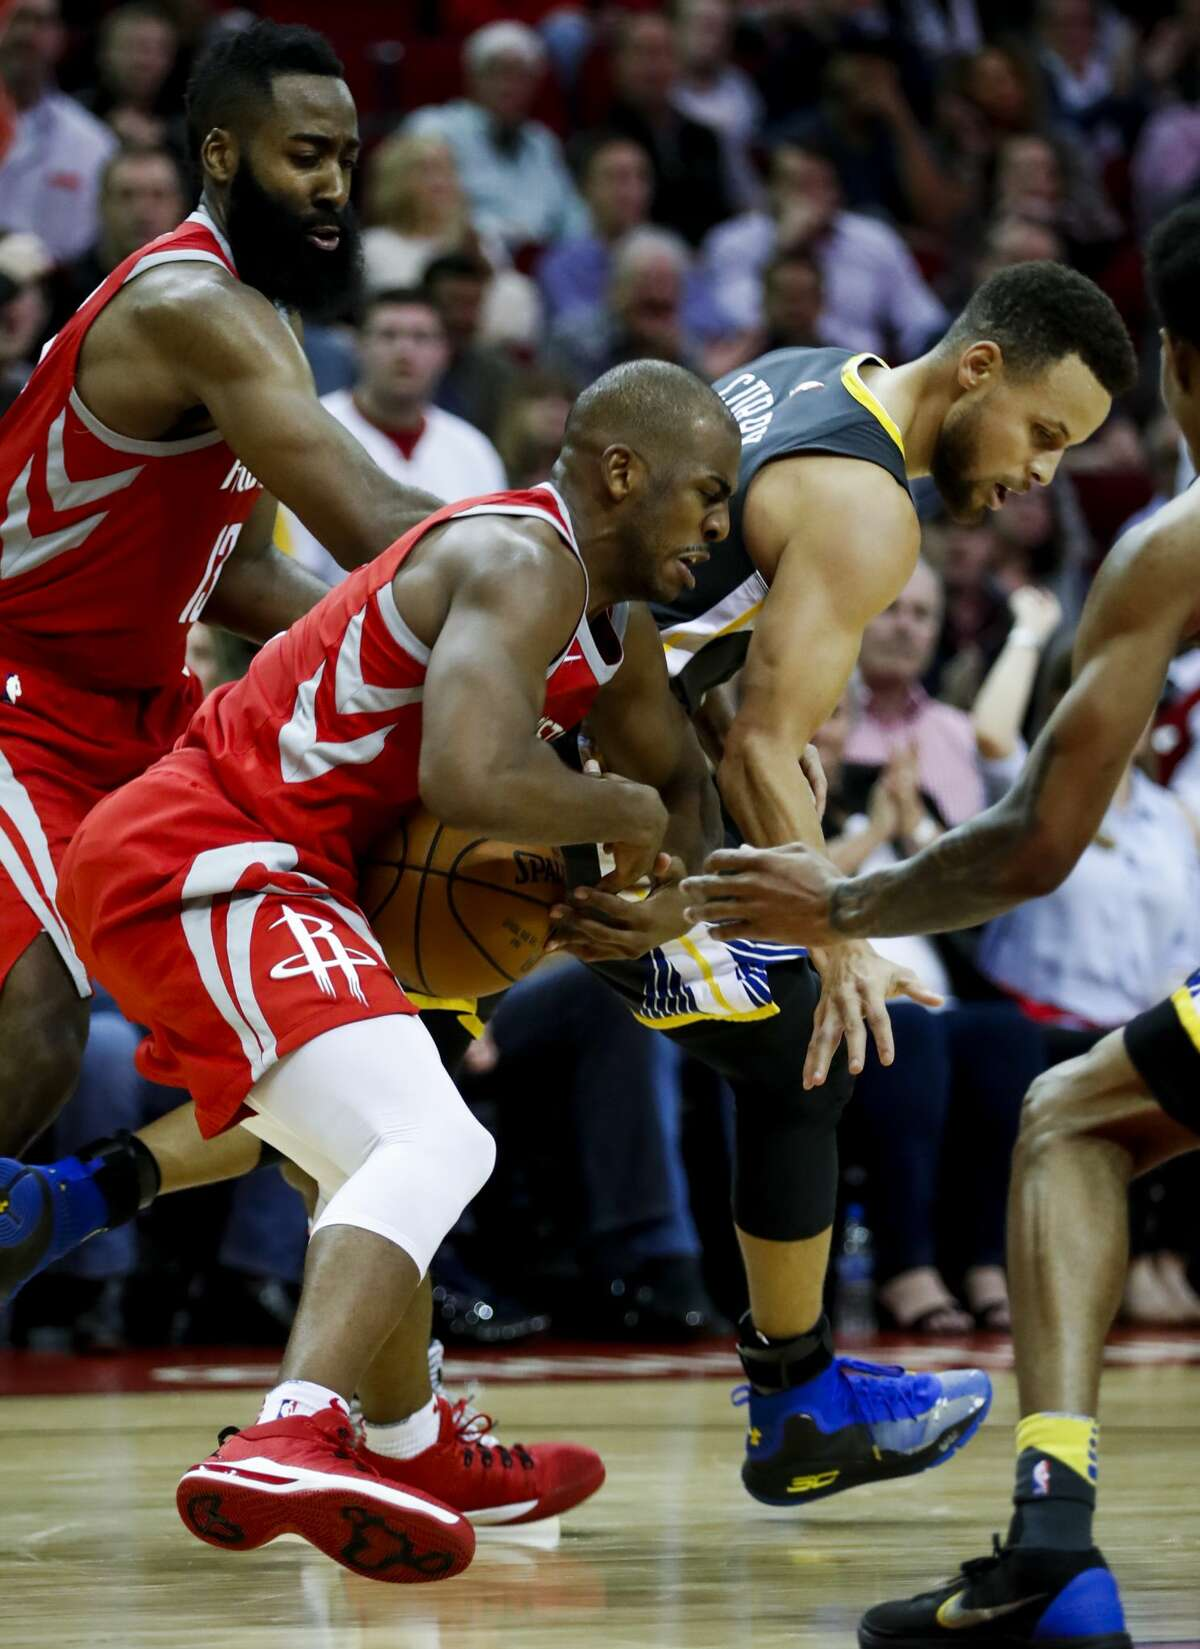 Houston Rockets guard Chris Paul (3) takes the ball from Golden State Warriors guard Stephen Curry (30) during the fourth quarter of an NBA basketball game at Toyota Center on Saturday, Jan. 20, 2018, in Houston. ( Brett Coomer / Houston Chronicle )